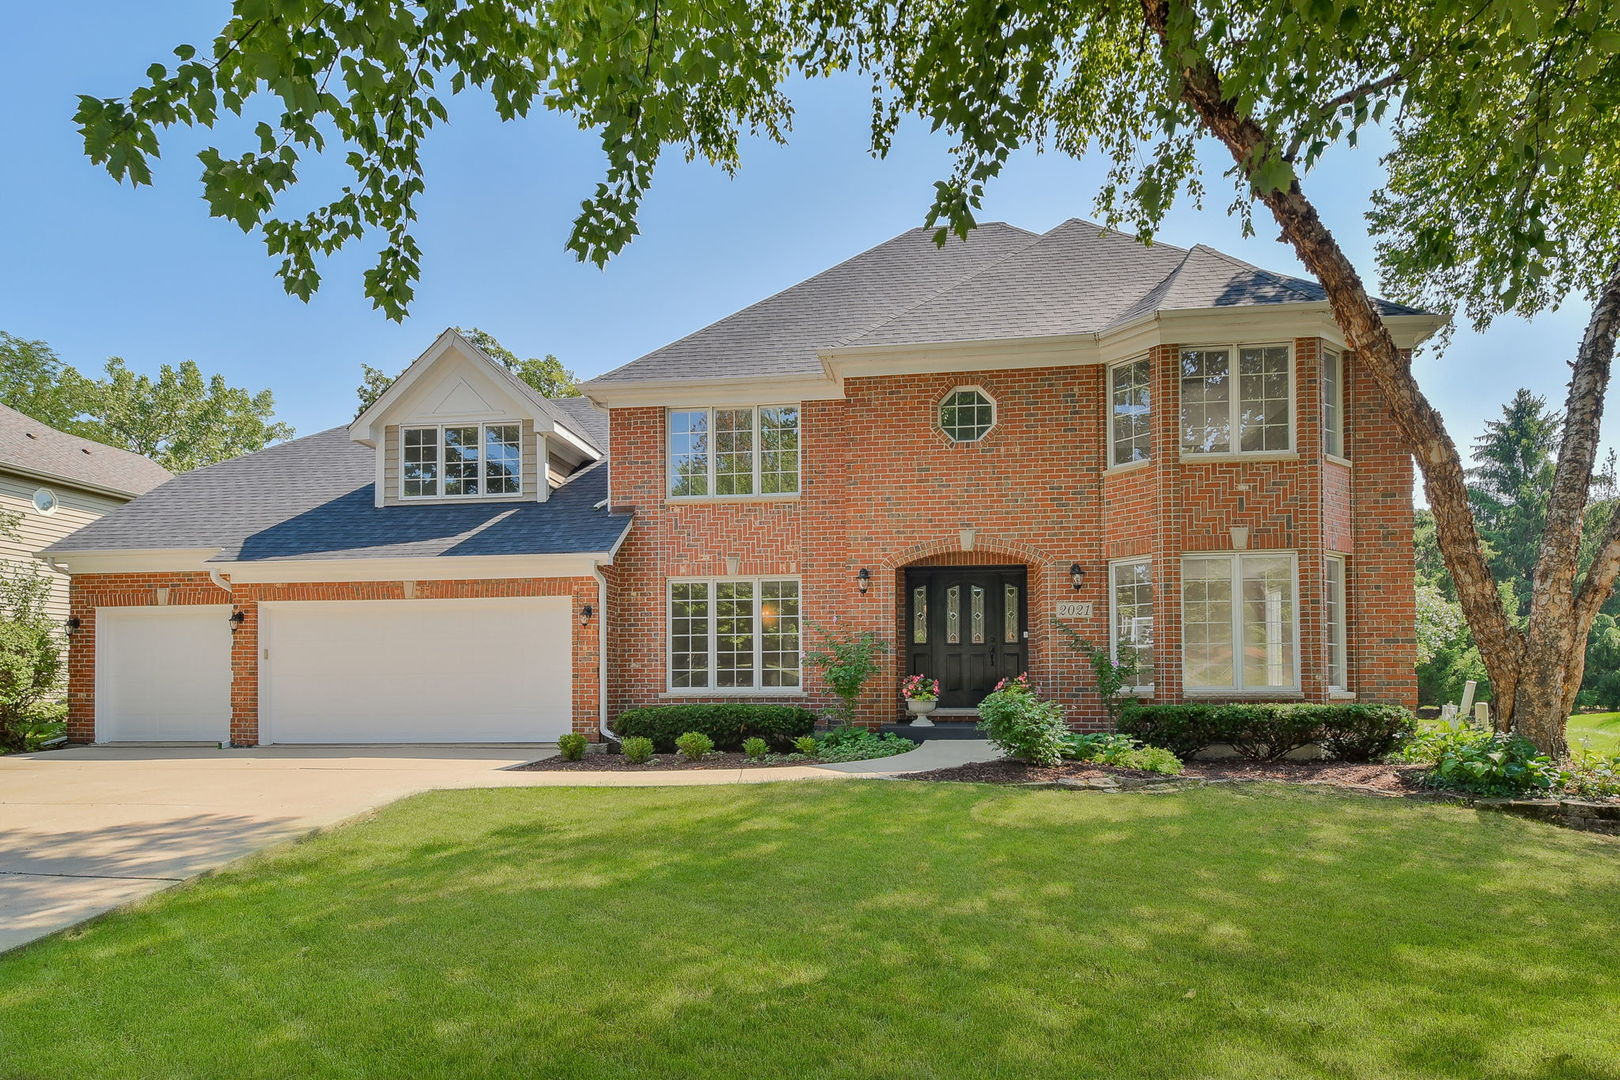 2021 Mustang Drive, Naperville, IL 60565